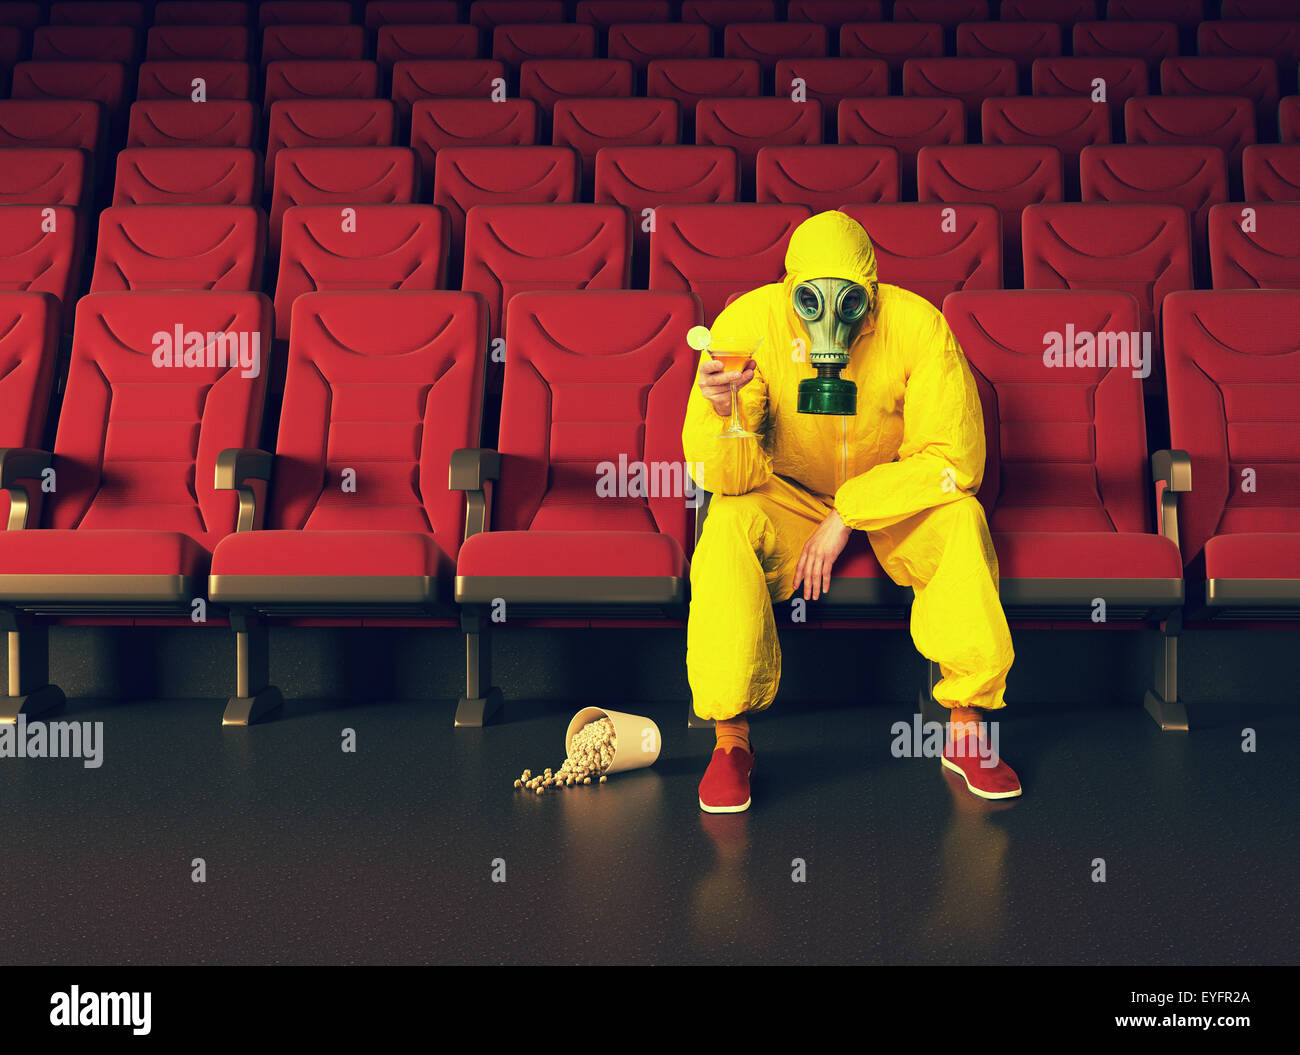 the man in a protective coverall  sitting in an empty theater - Stock Image